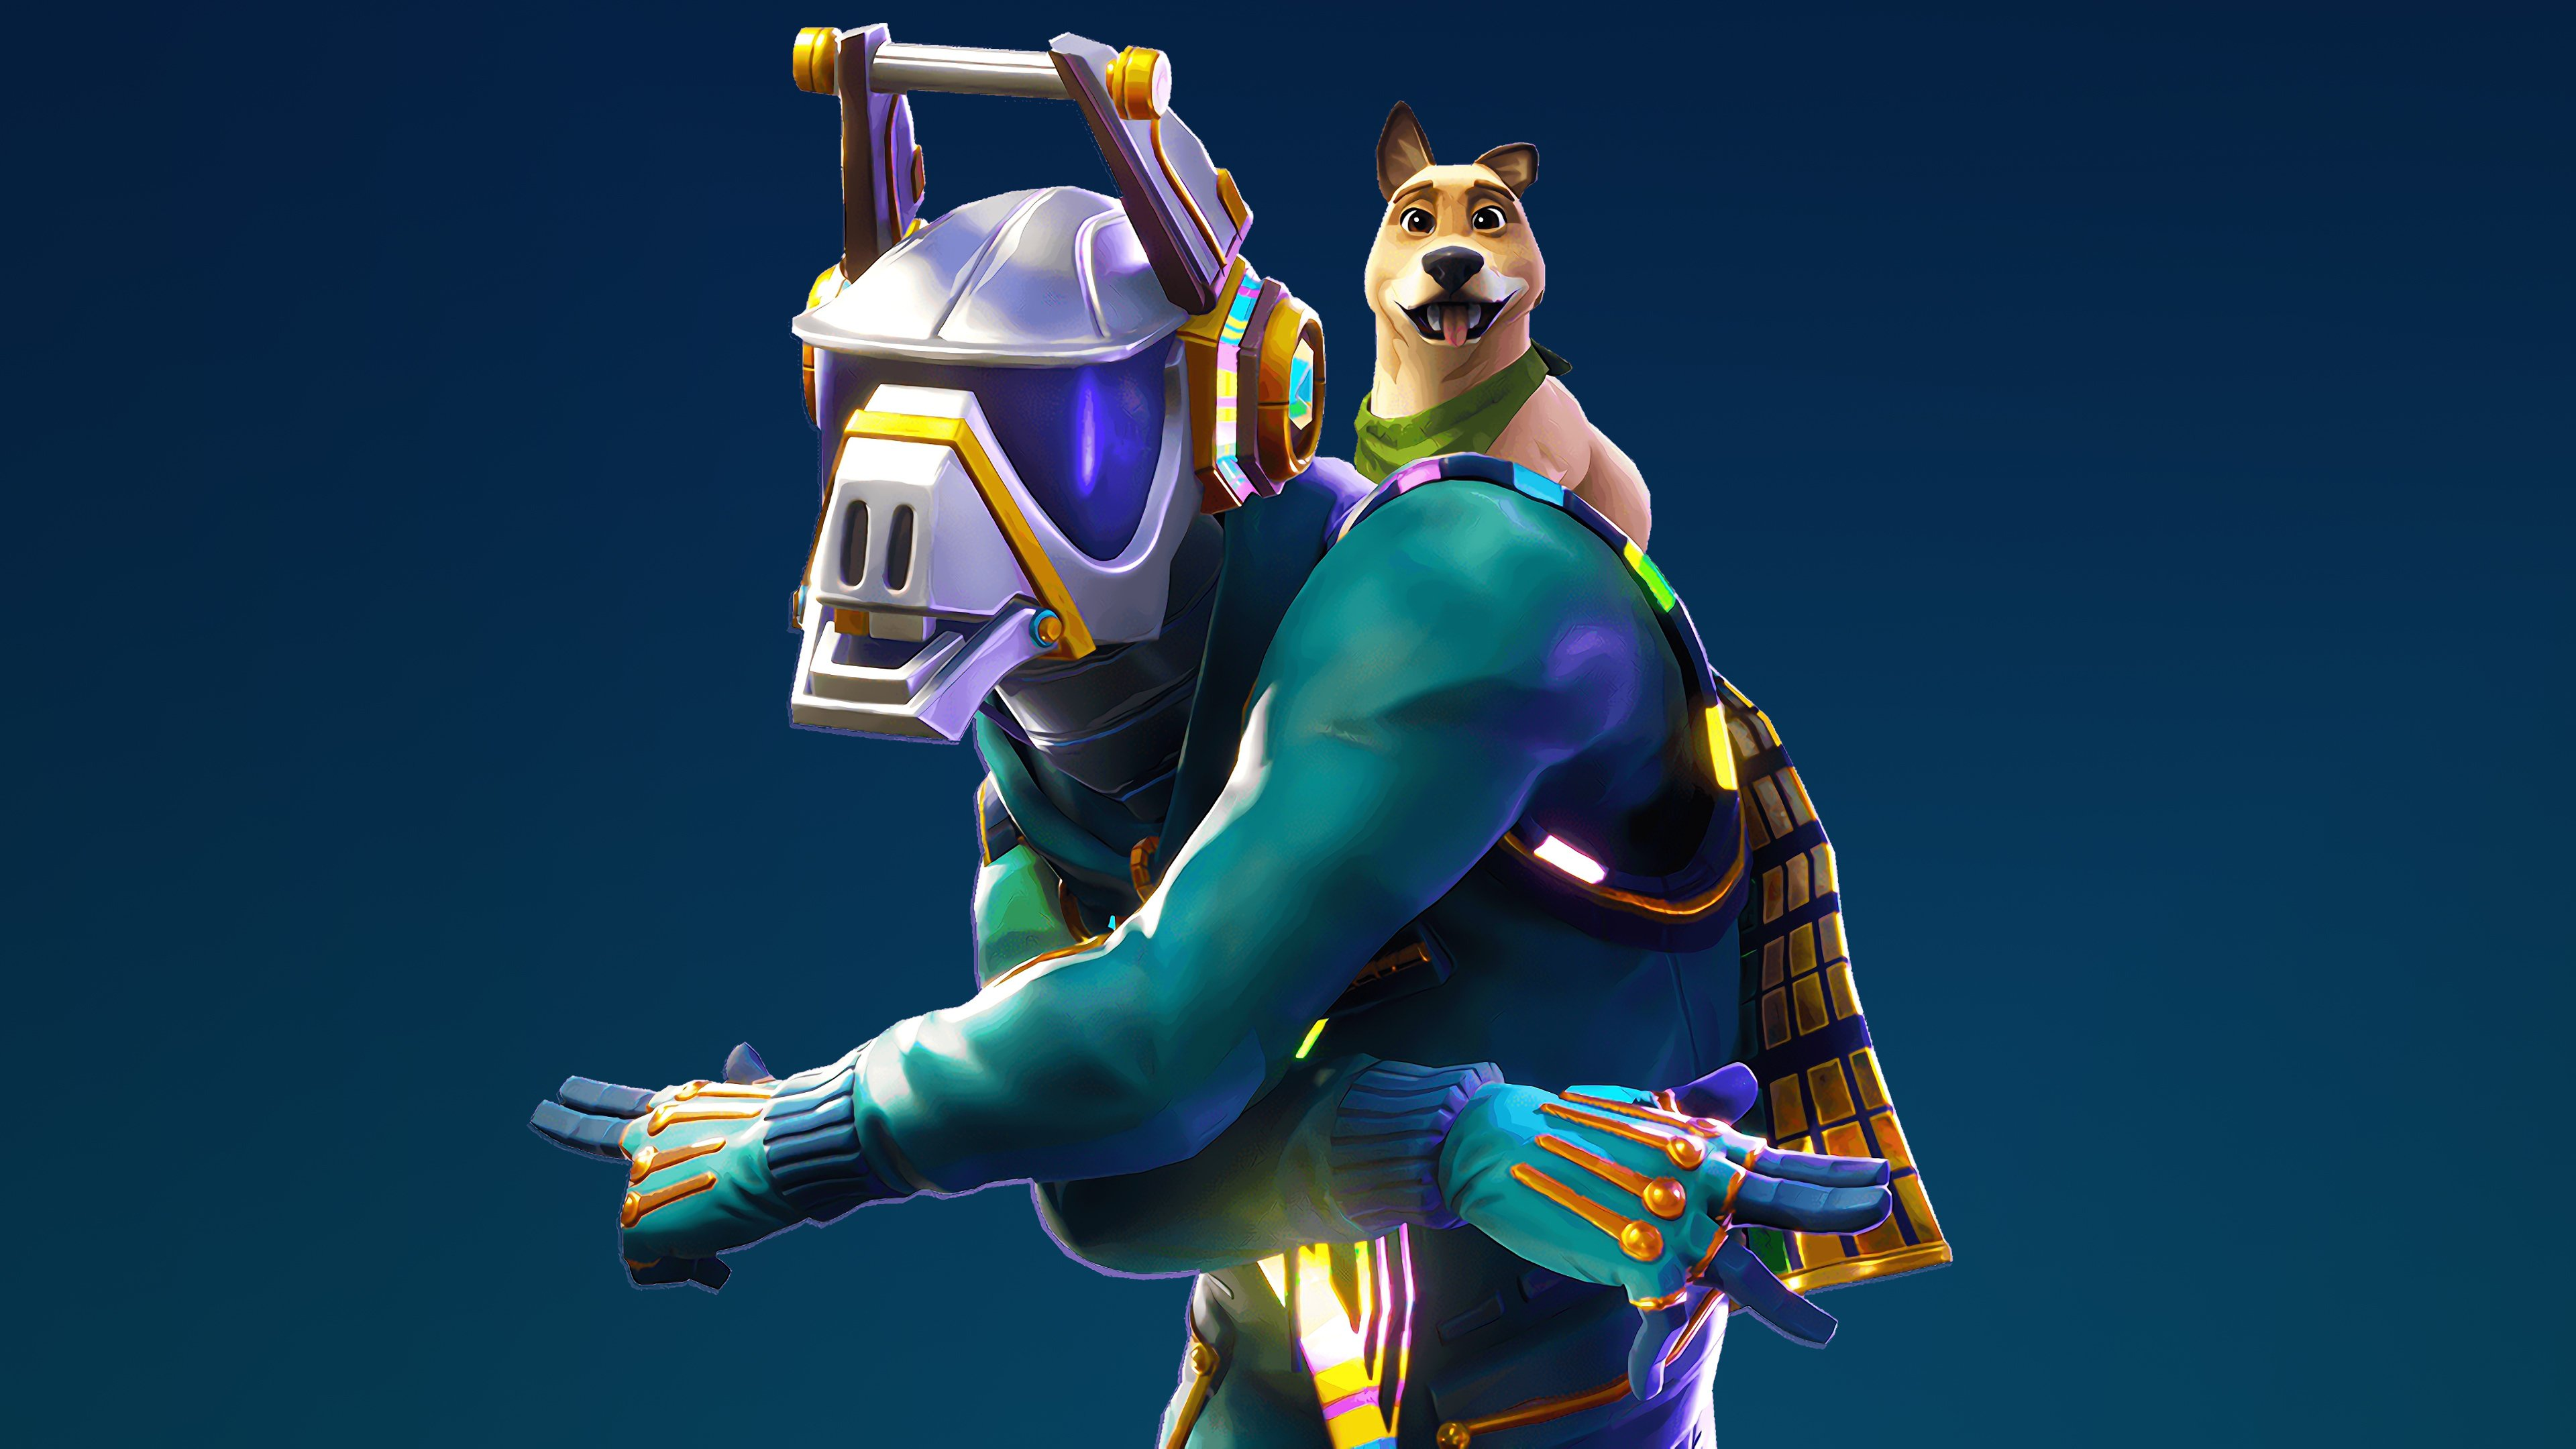 New Female Dj Yonder Fortnite Skin And Back Bling Leaked